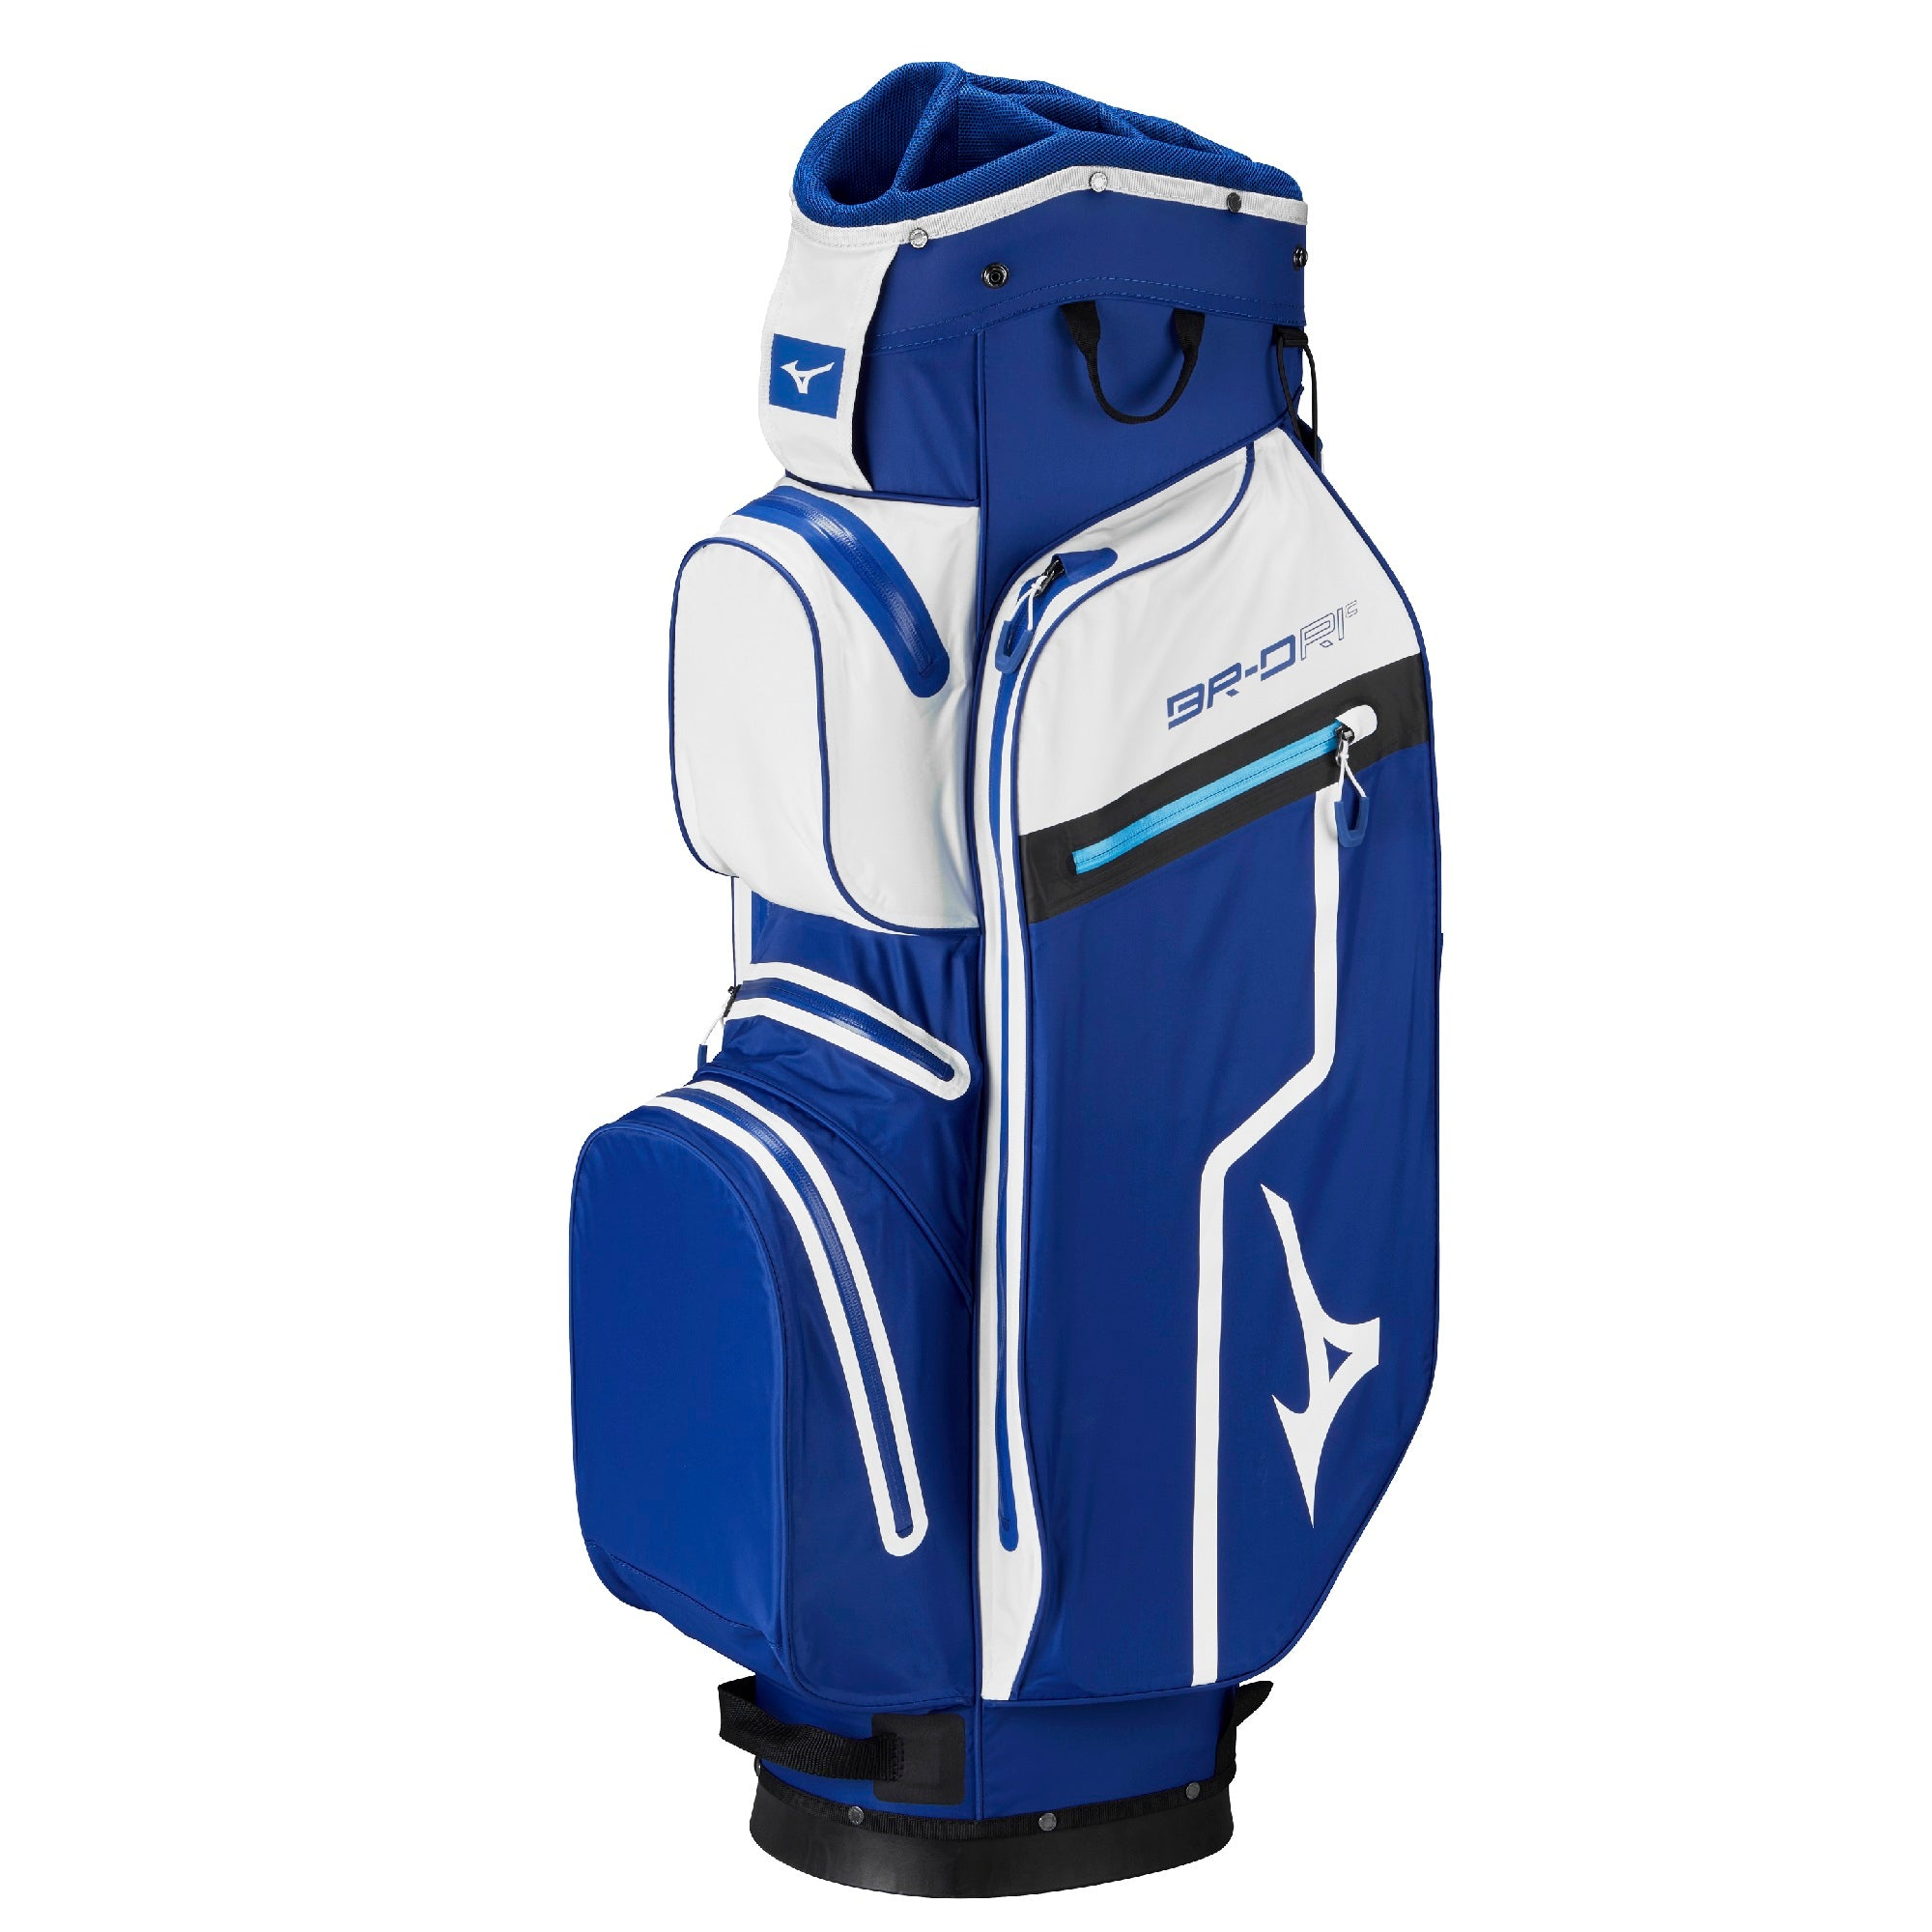 Mizuno Golf BR-DRI Cart Bag